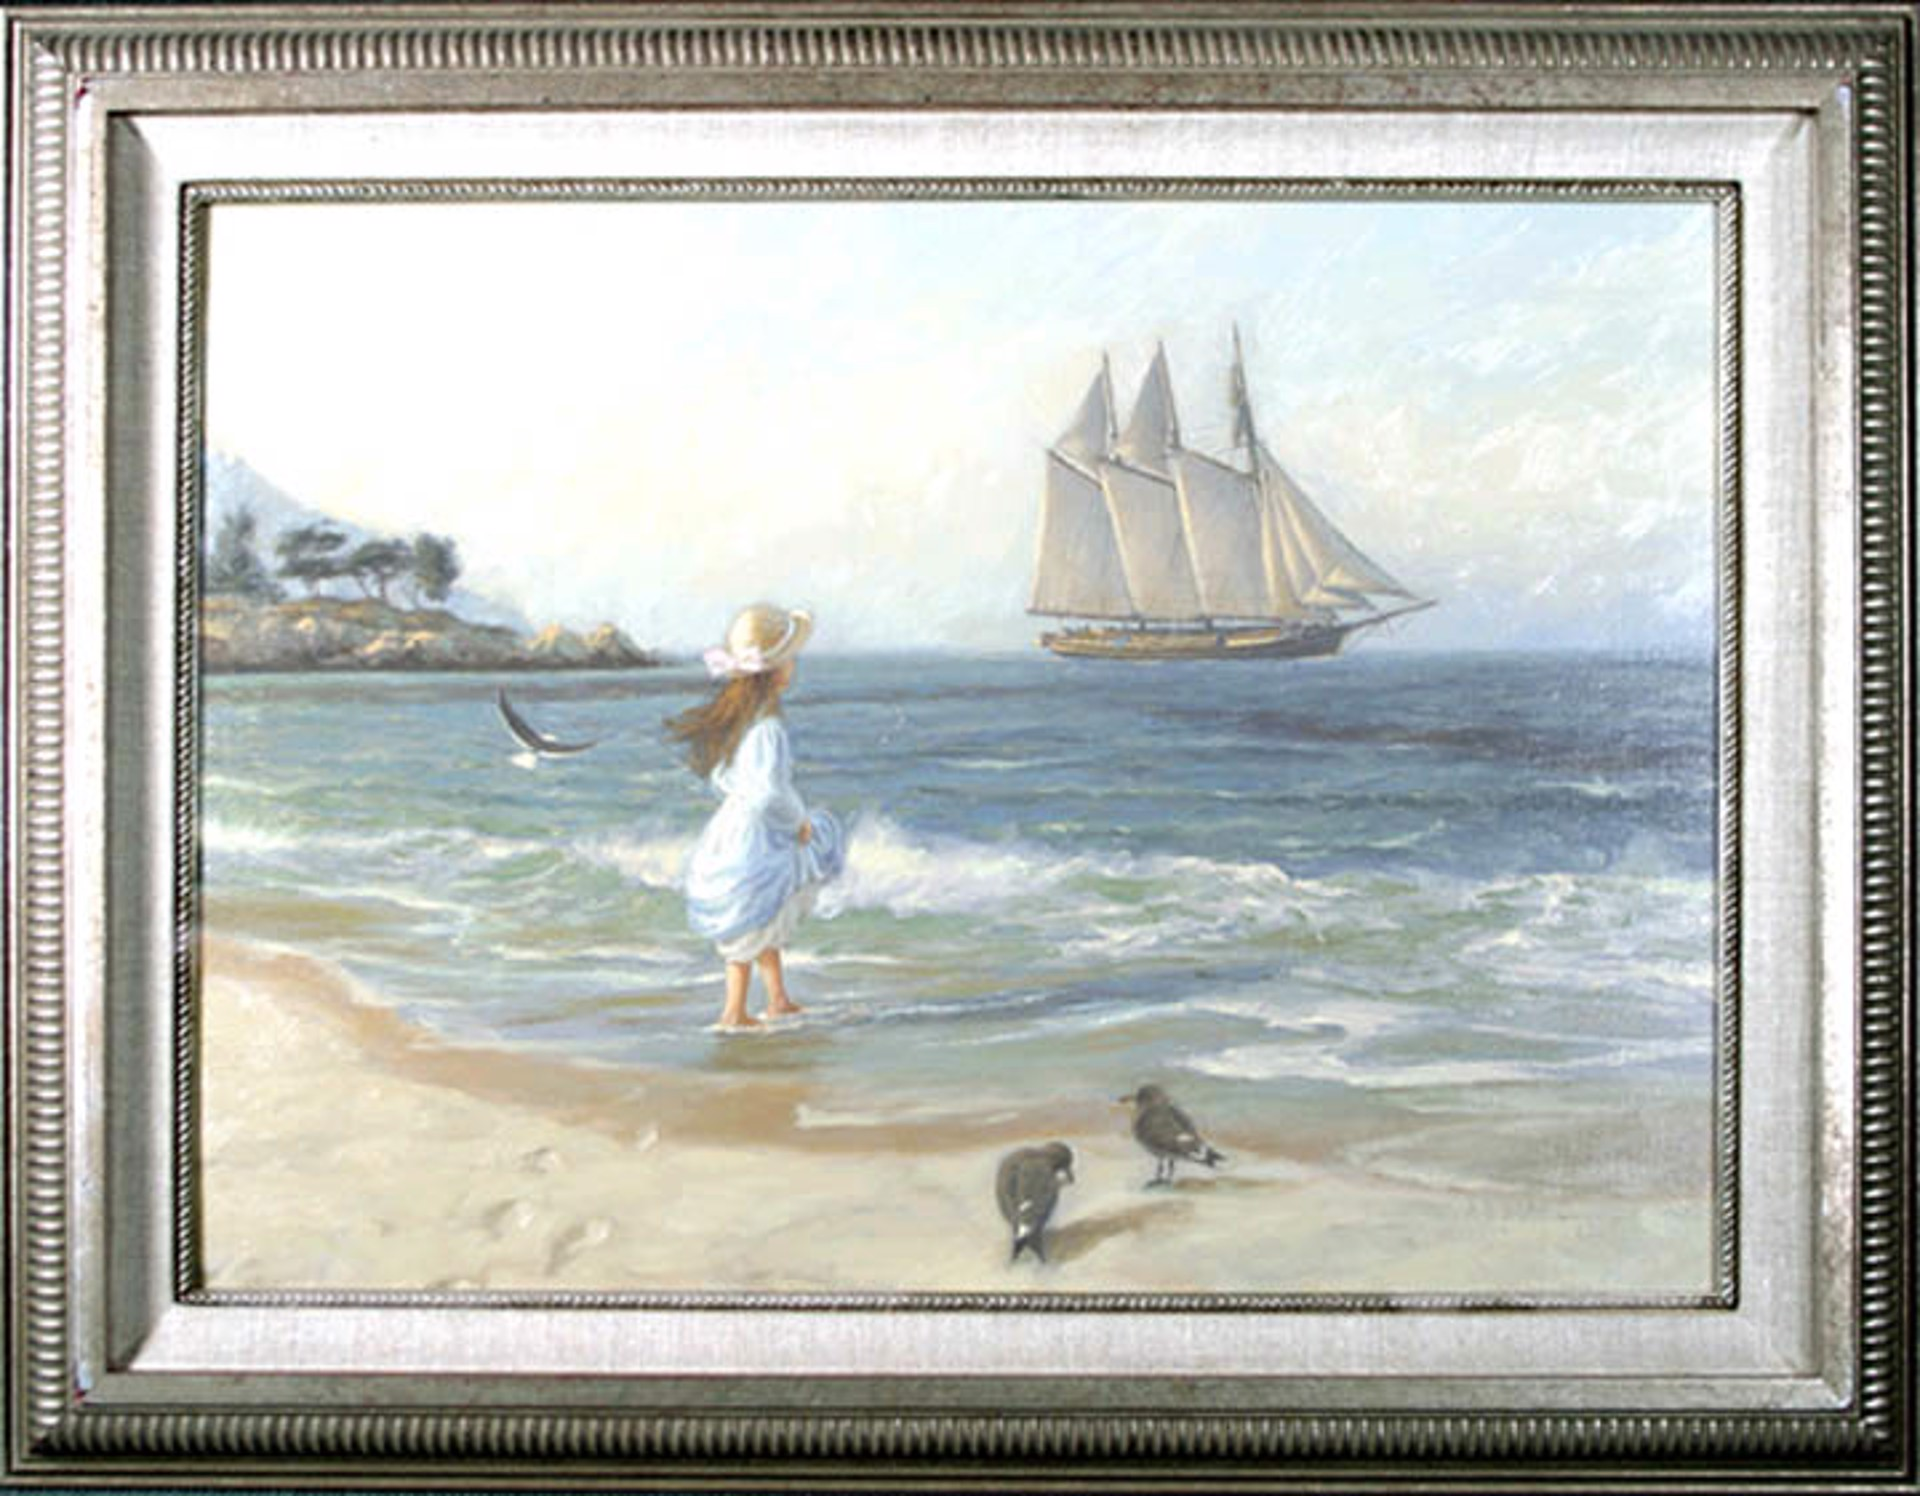 Looking Out to Sea by A.D. (Tony) Blake